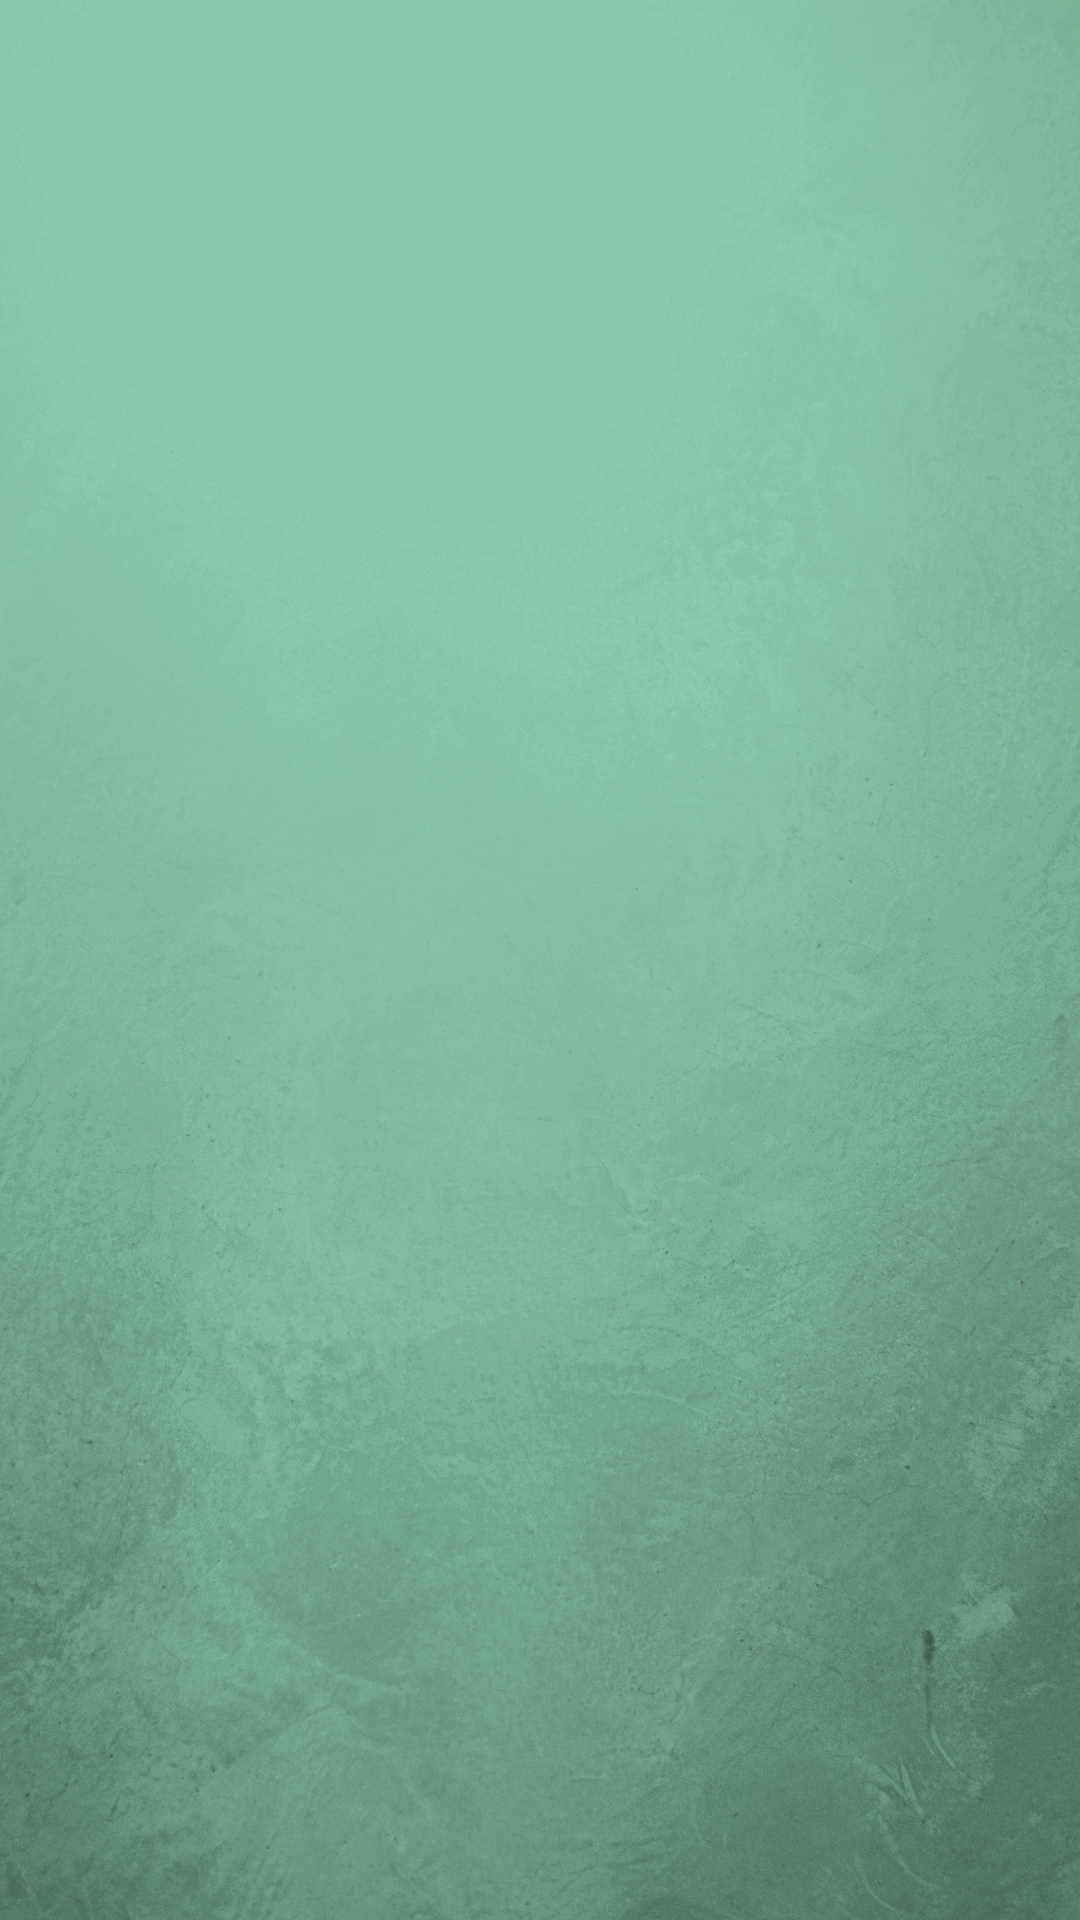 20 Sage Green Aesthetic Wallpapers - Free Download | Just ...